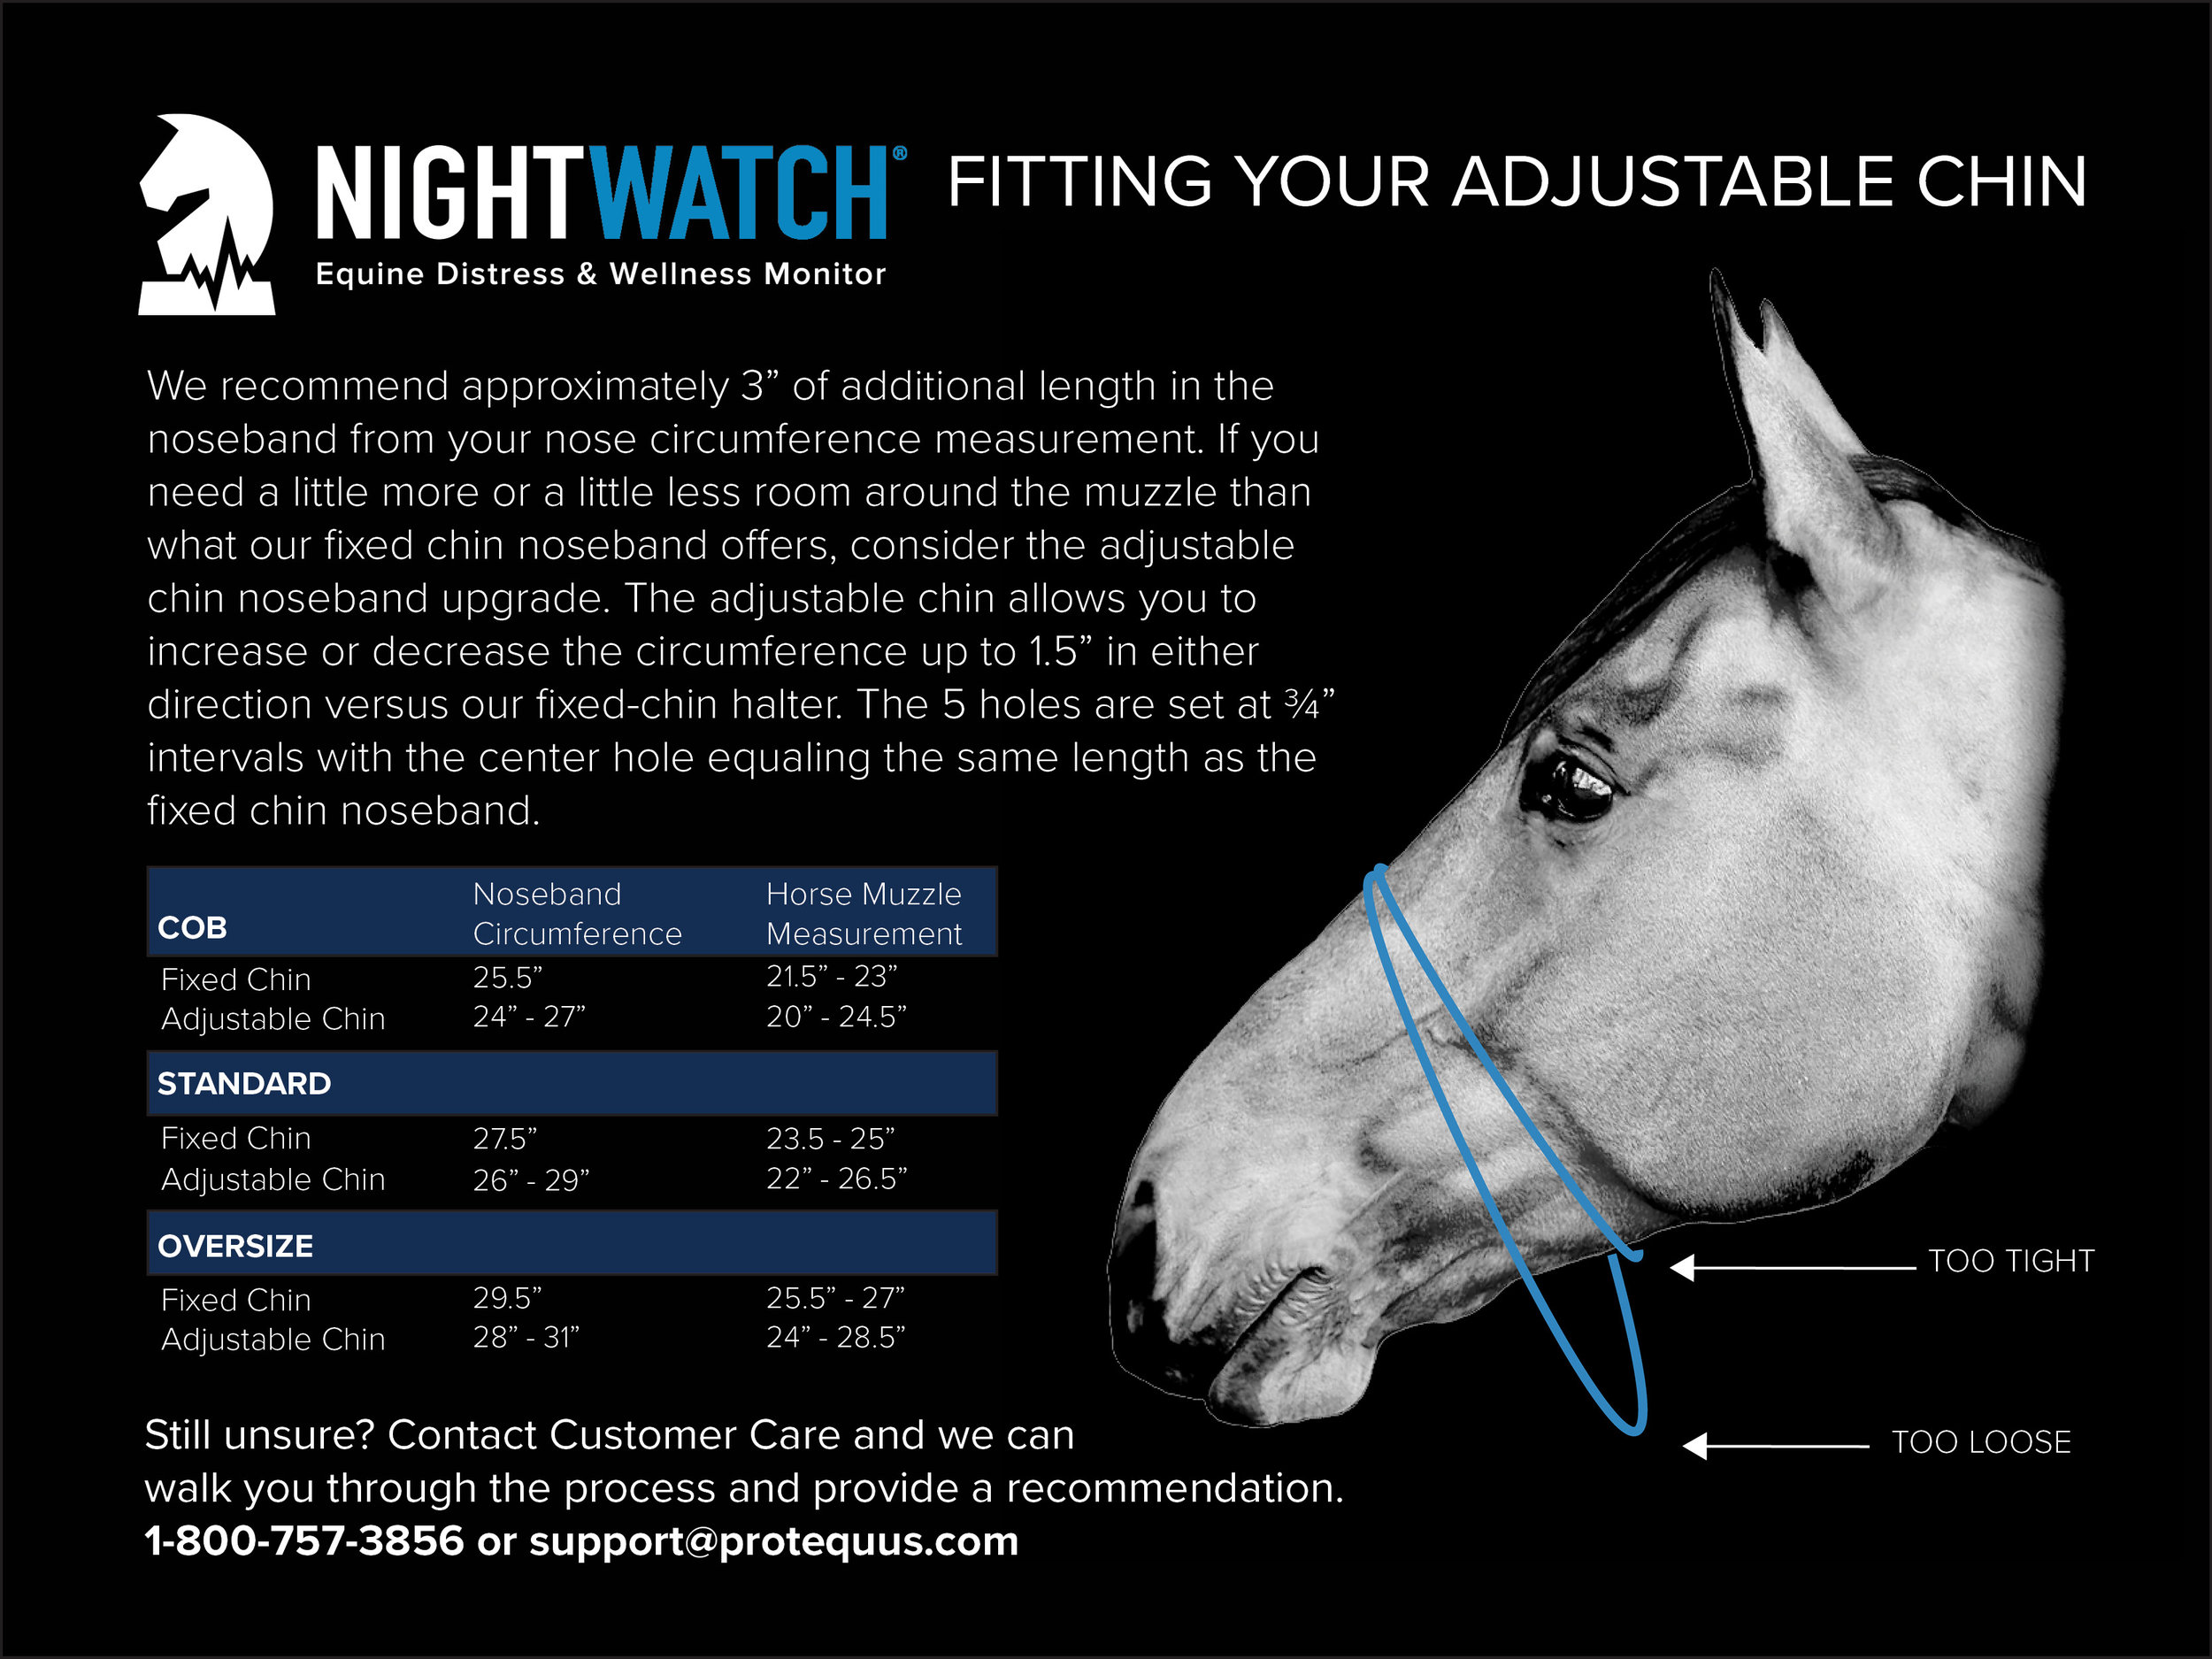 NIGHTWATCH® Adjustable Chin Guide